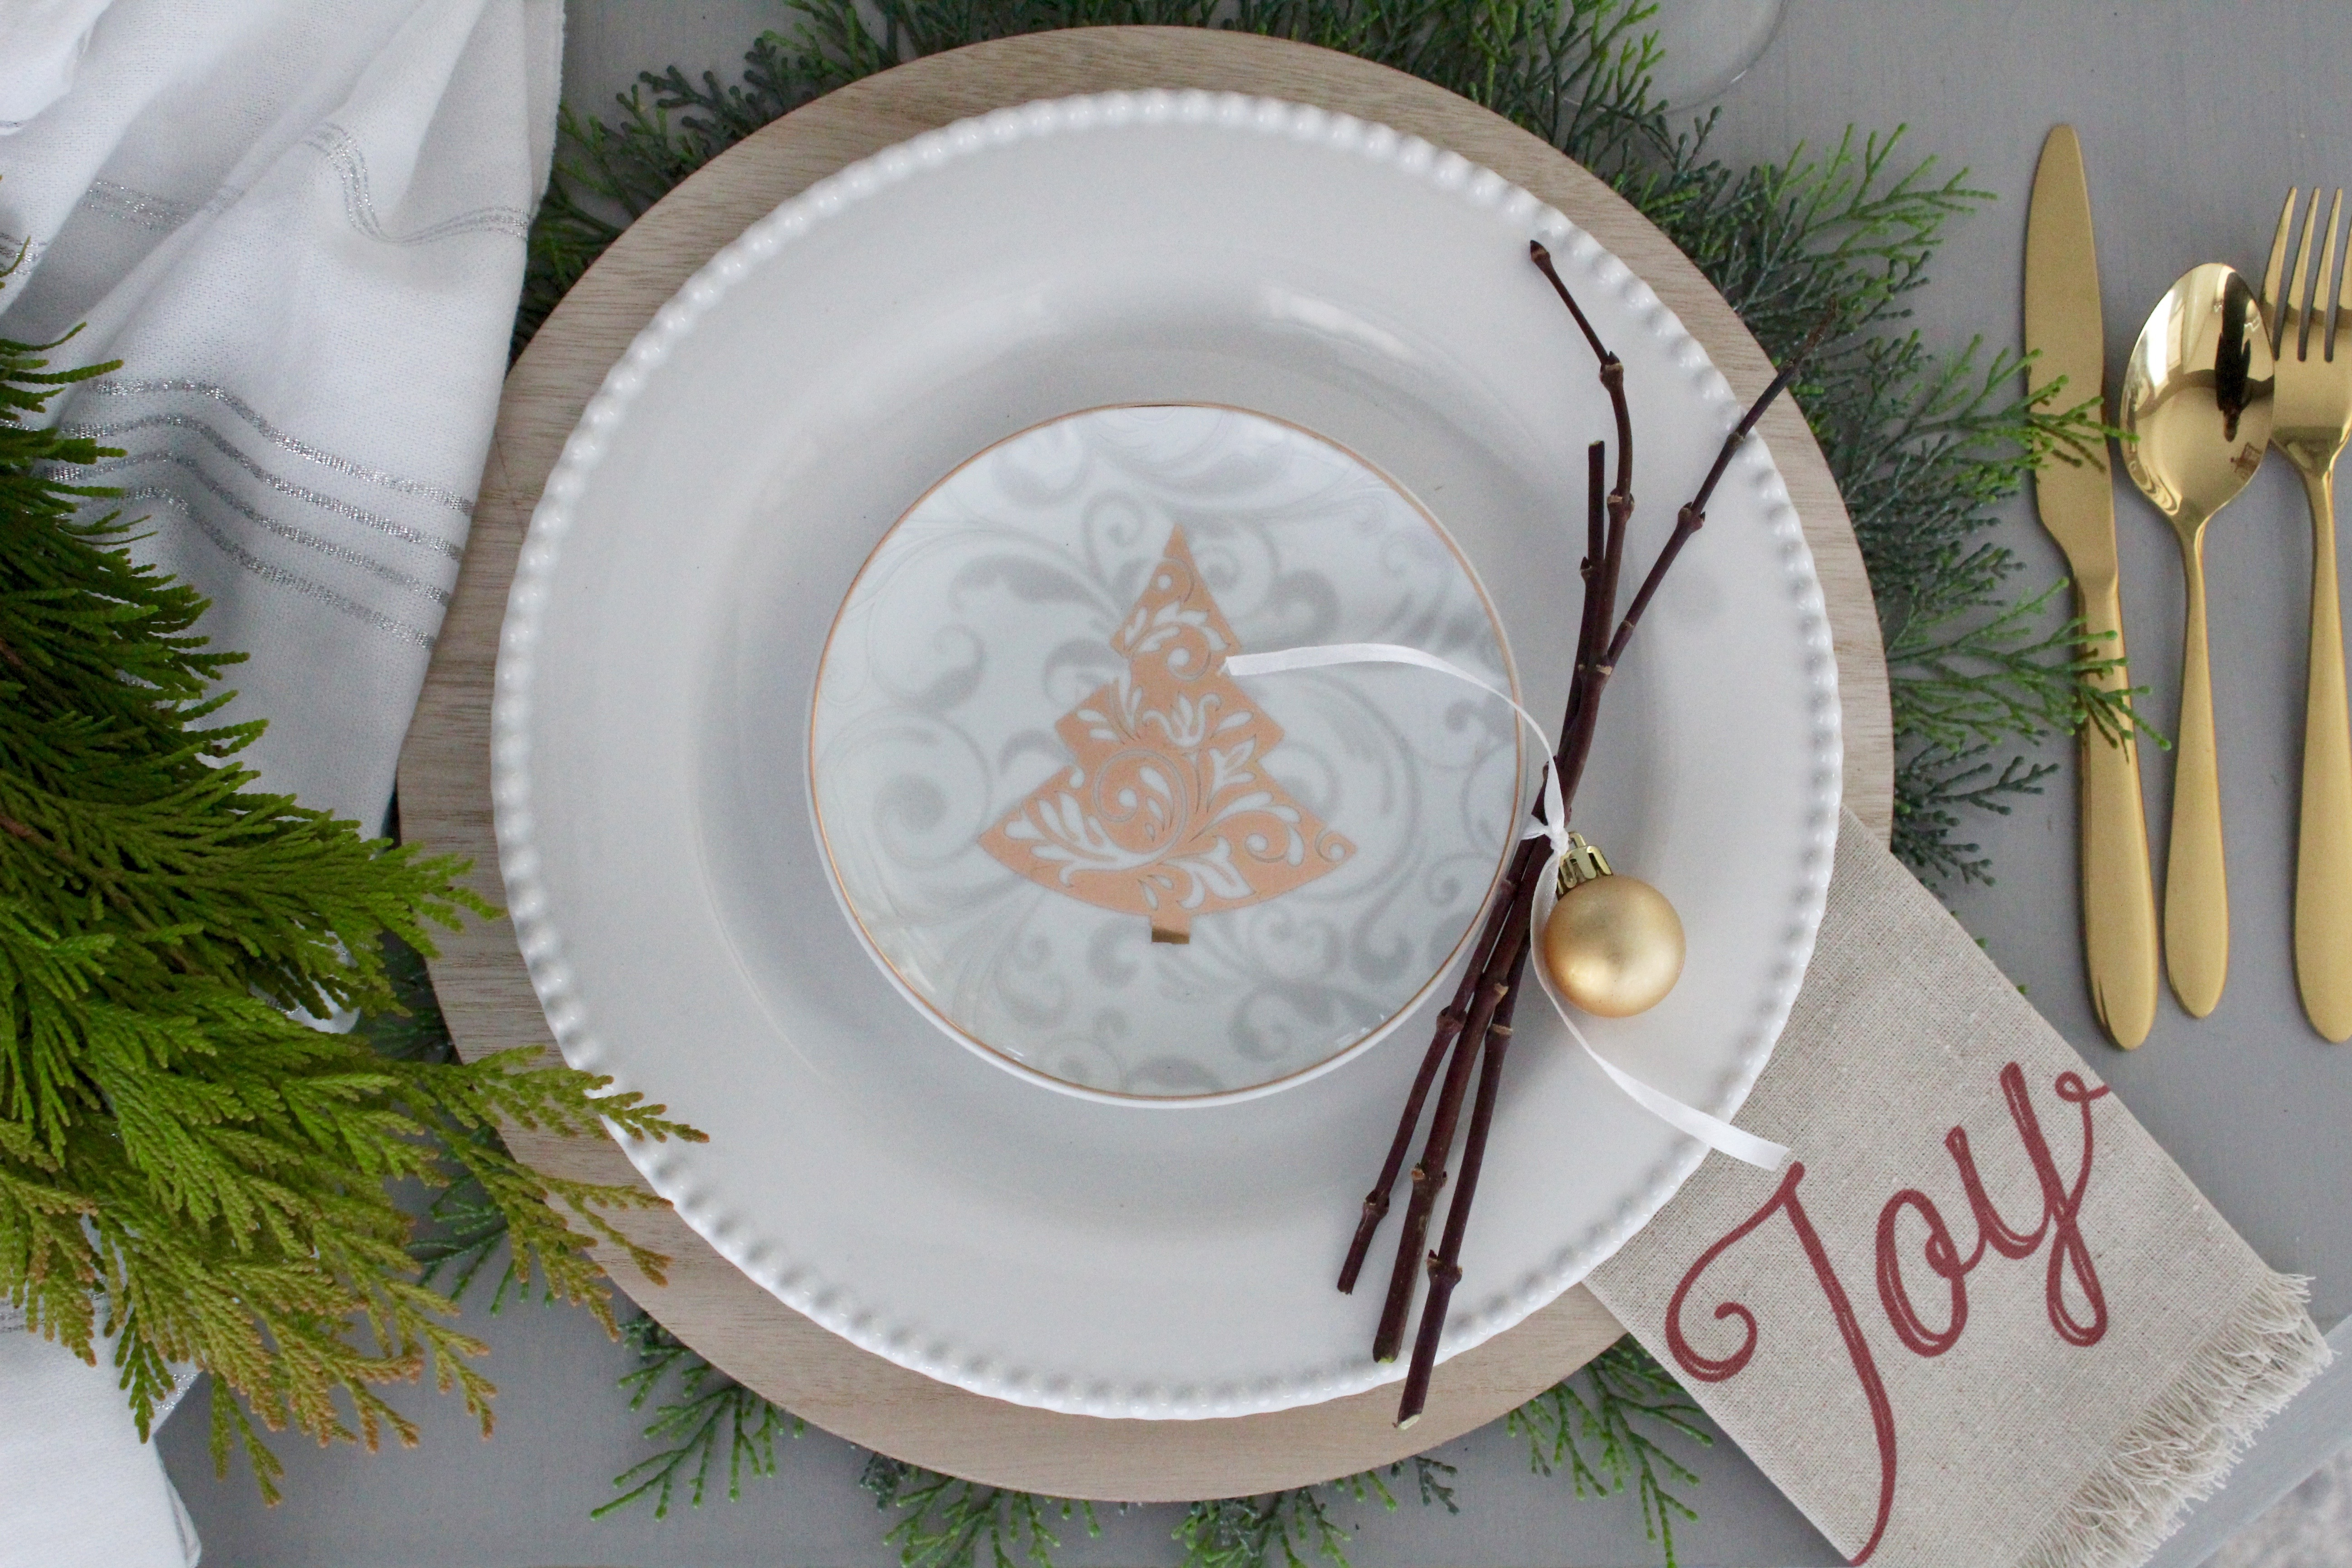 simple and charming plate adornment